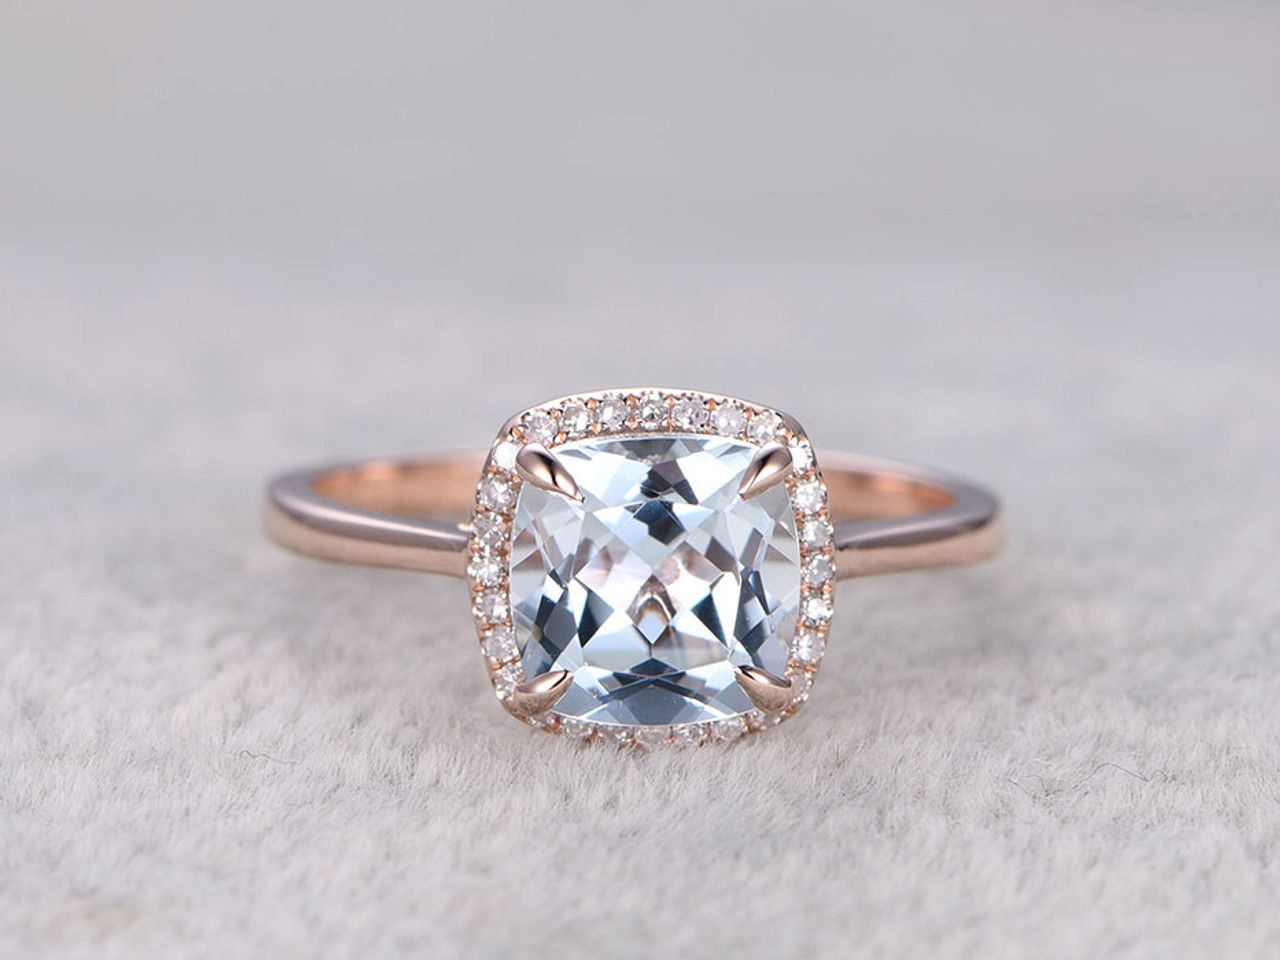 mount engagement halo rose ring gold vintage diamond cushion semi cut rings